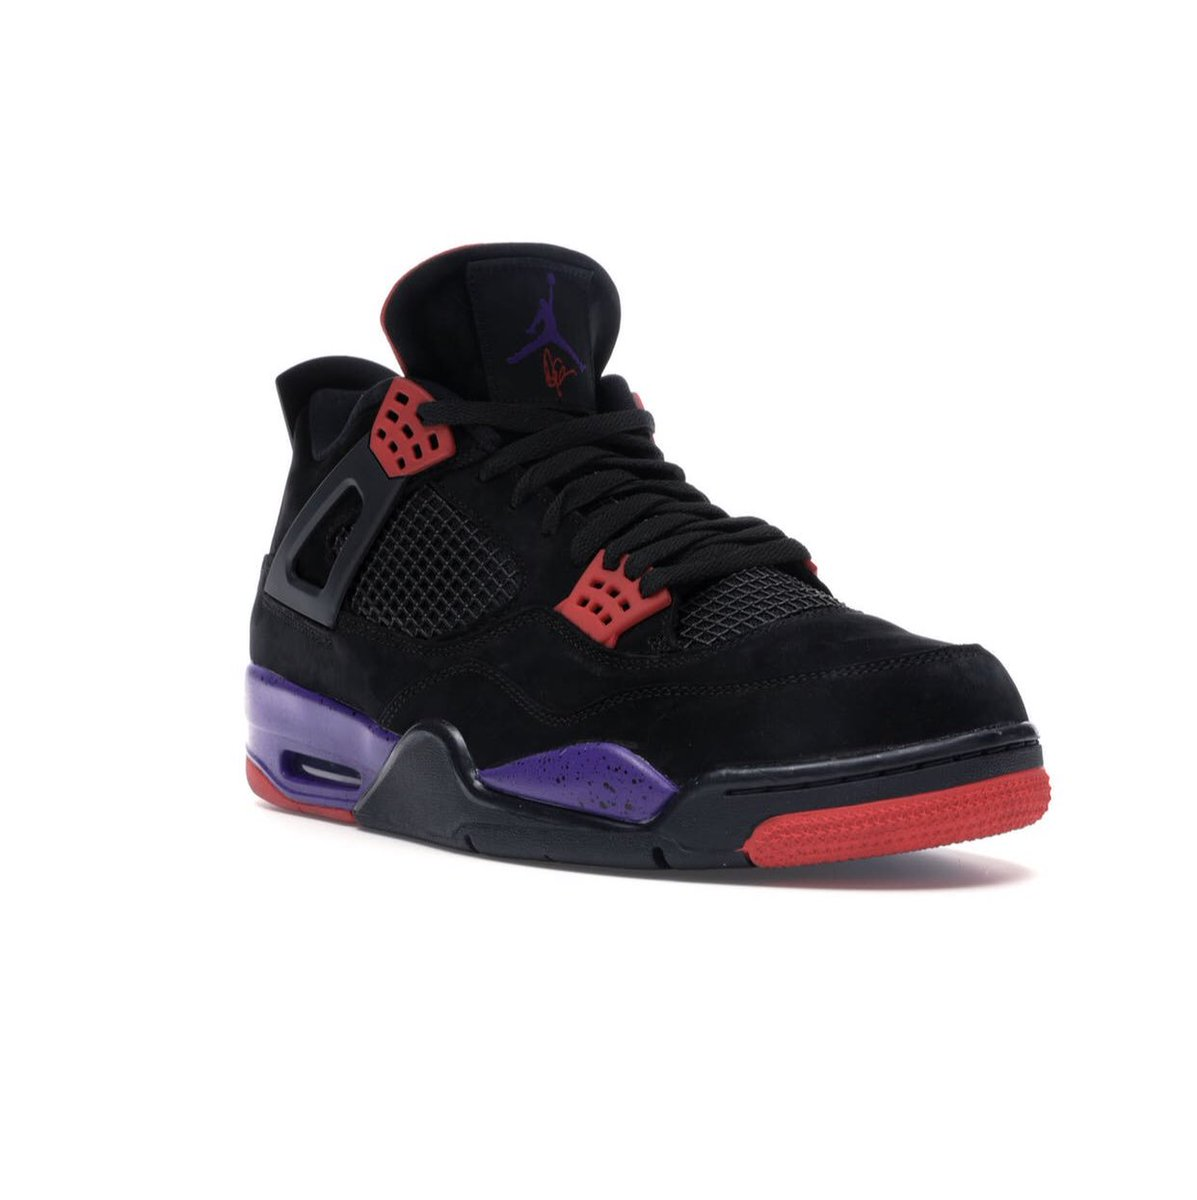 To celebrate the Raptors winning last night, in addition to our last giveaway we wanted to give away the Raptor Drake OVO 4s in size 10.5 with a membership to AMNotify.   RT this tweet to enter.